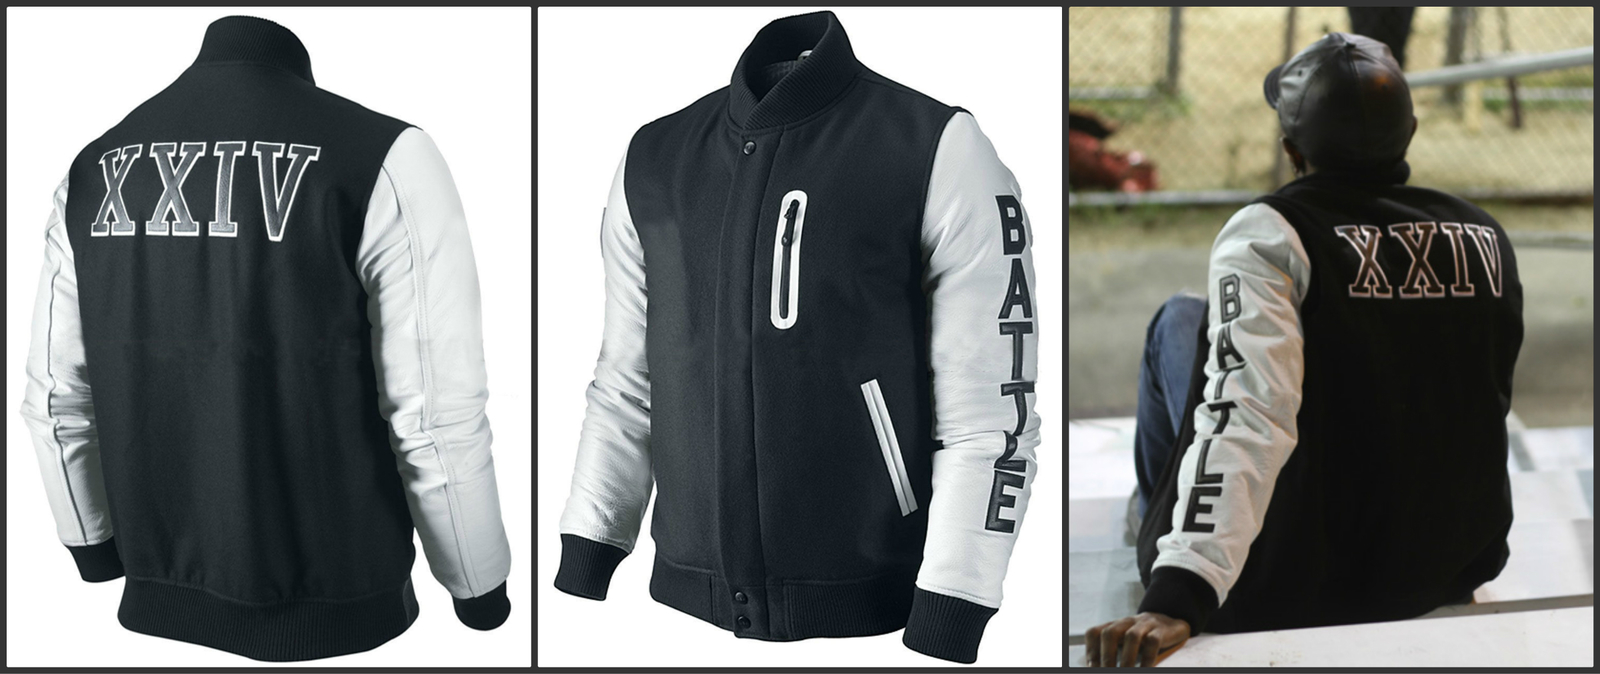 3287c5f13bb Michael B Jordan Kobe Destroyer XXIV Jacket - Battle Letterman Leather  sleeves | Pradux